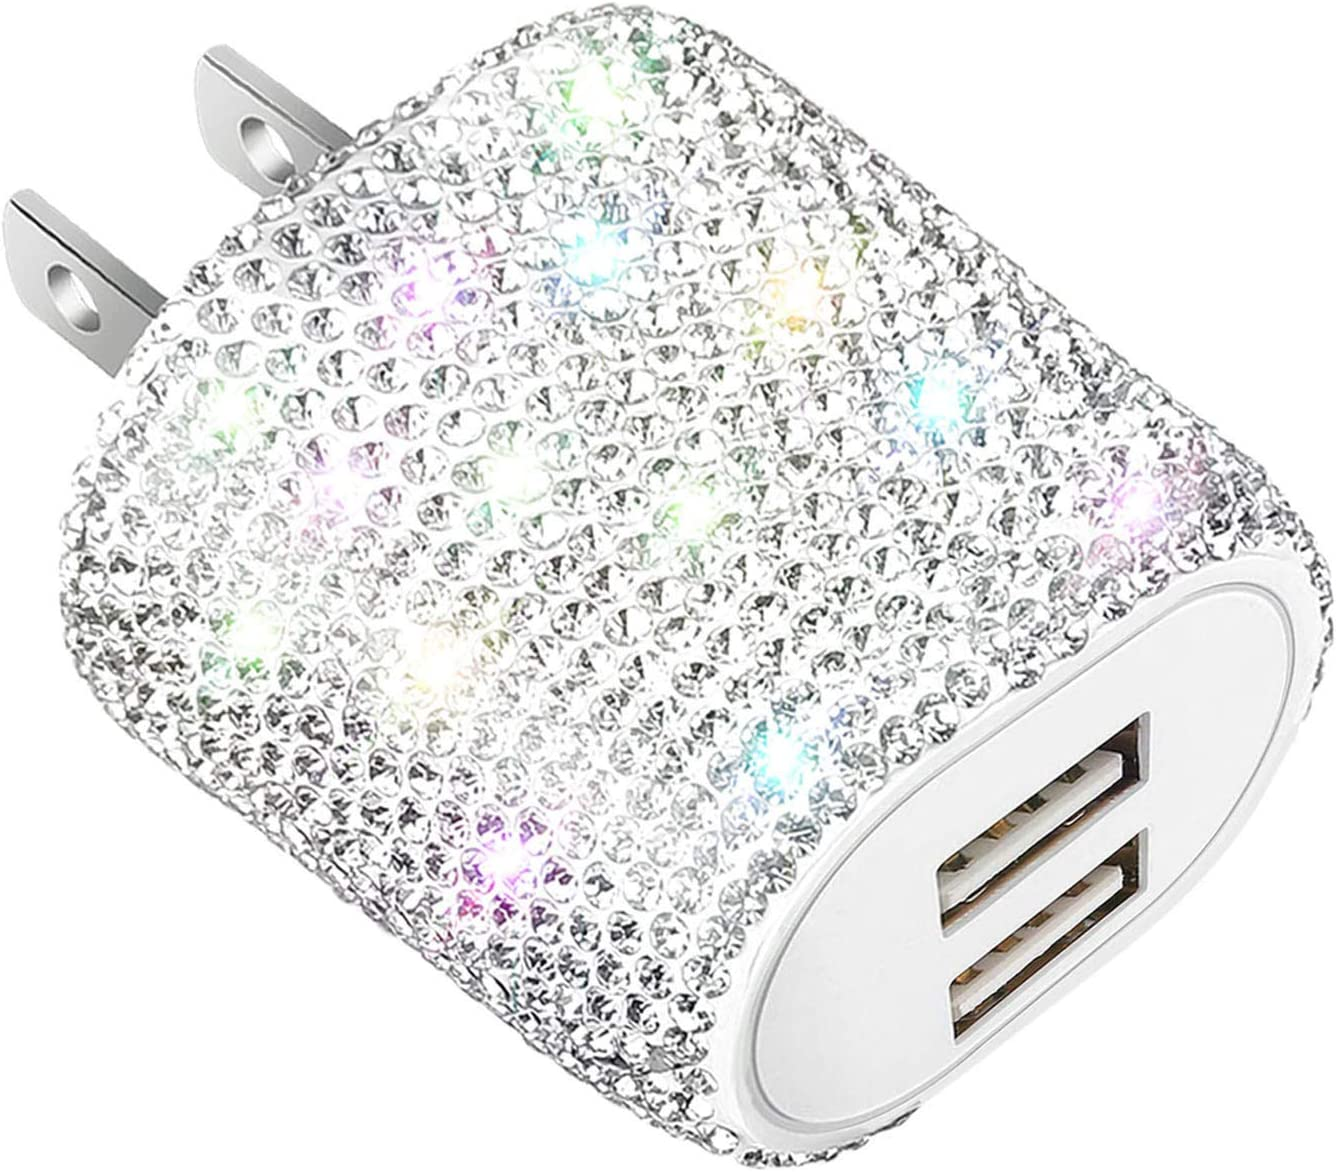 Bling Time sale USB Wall Charger unisex 24W Dual Block Adapter Port Charging Plug